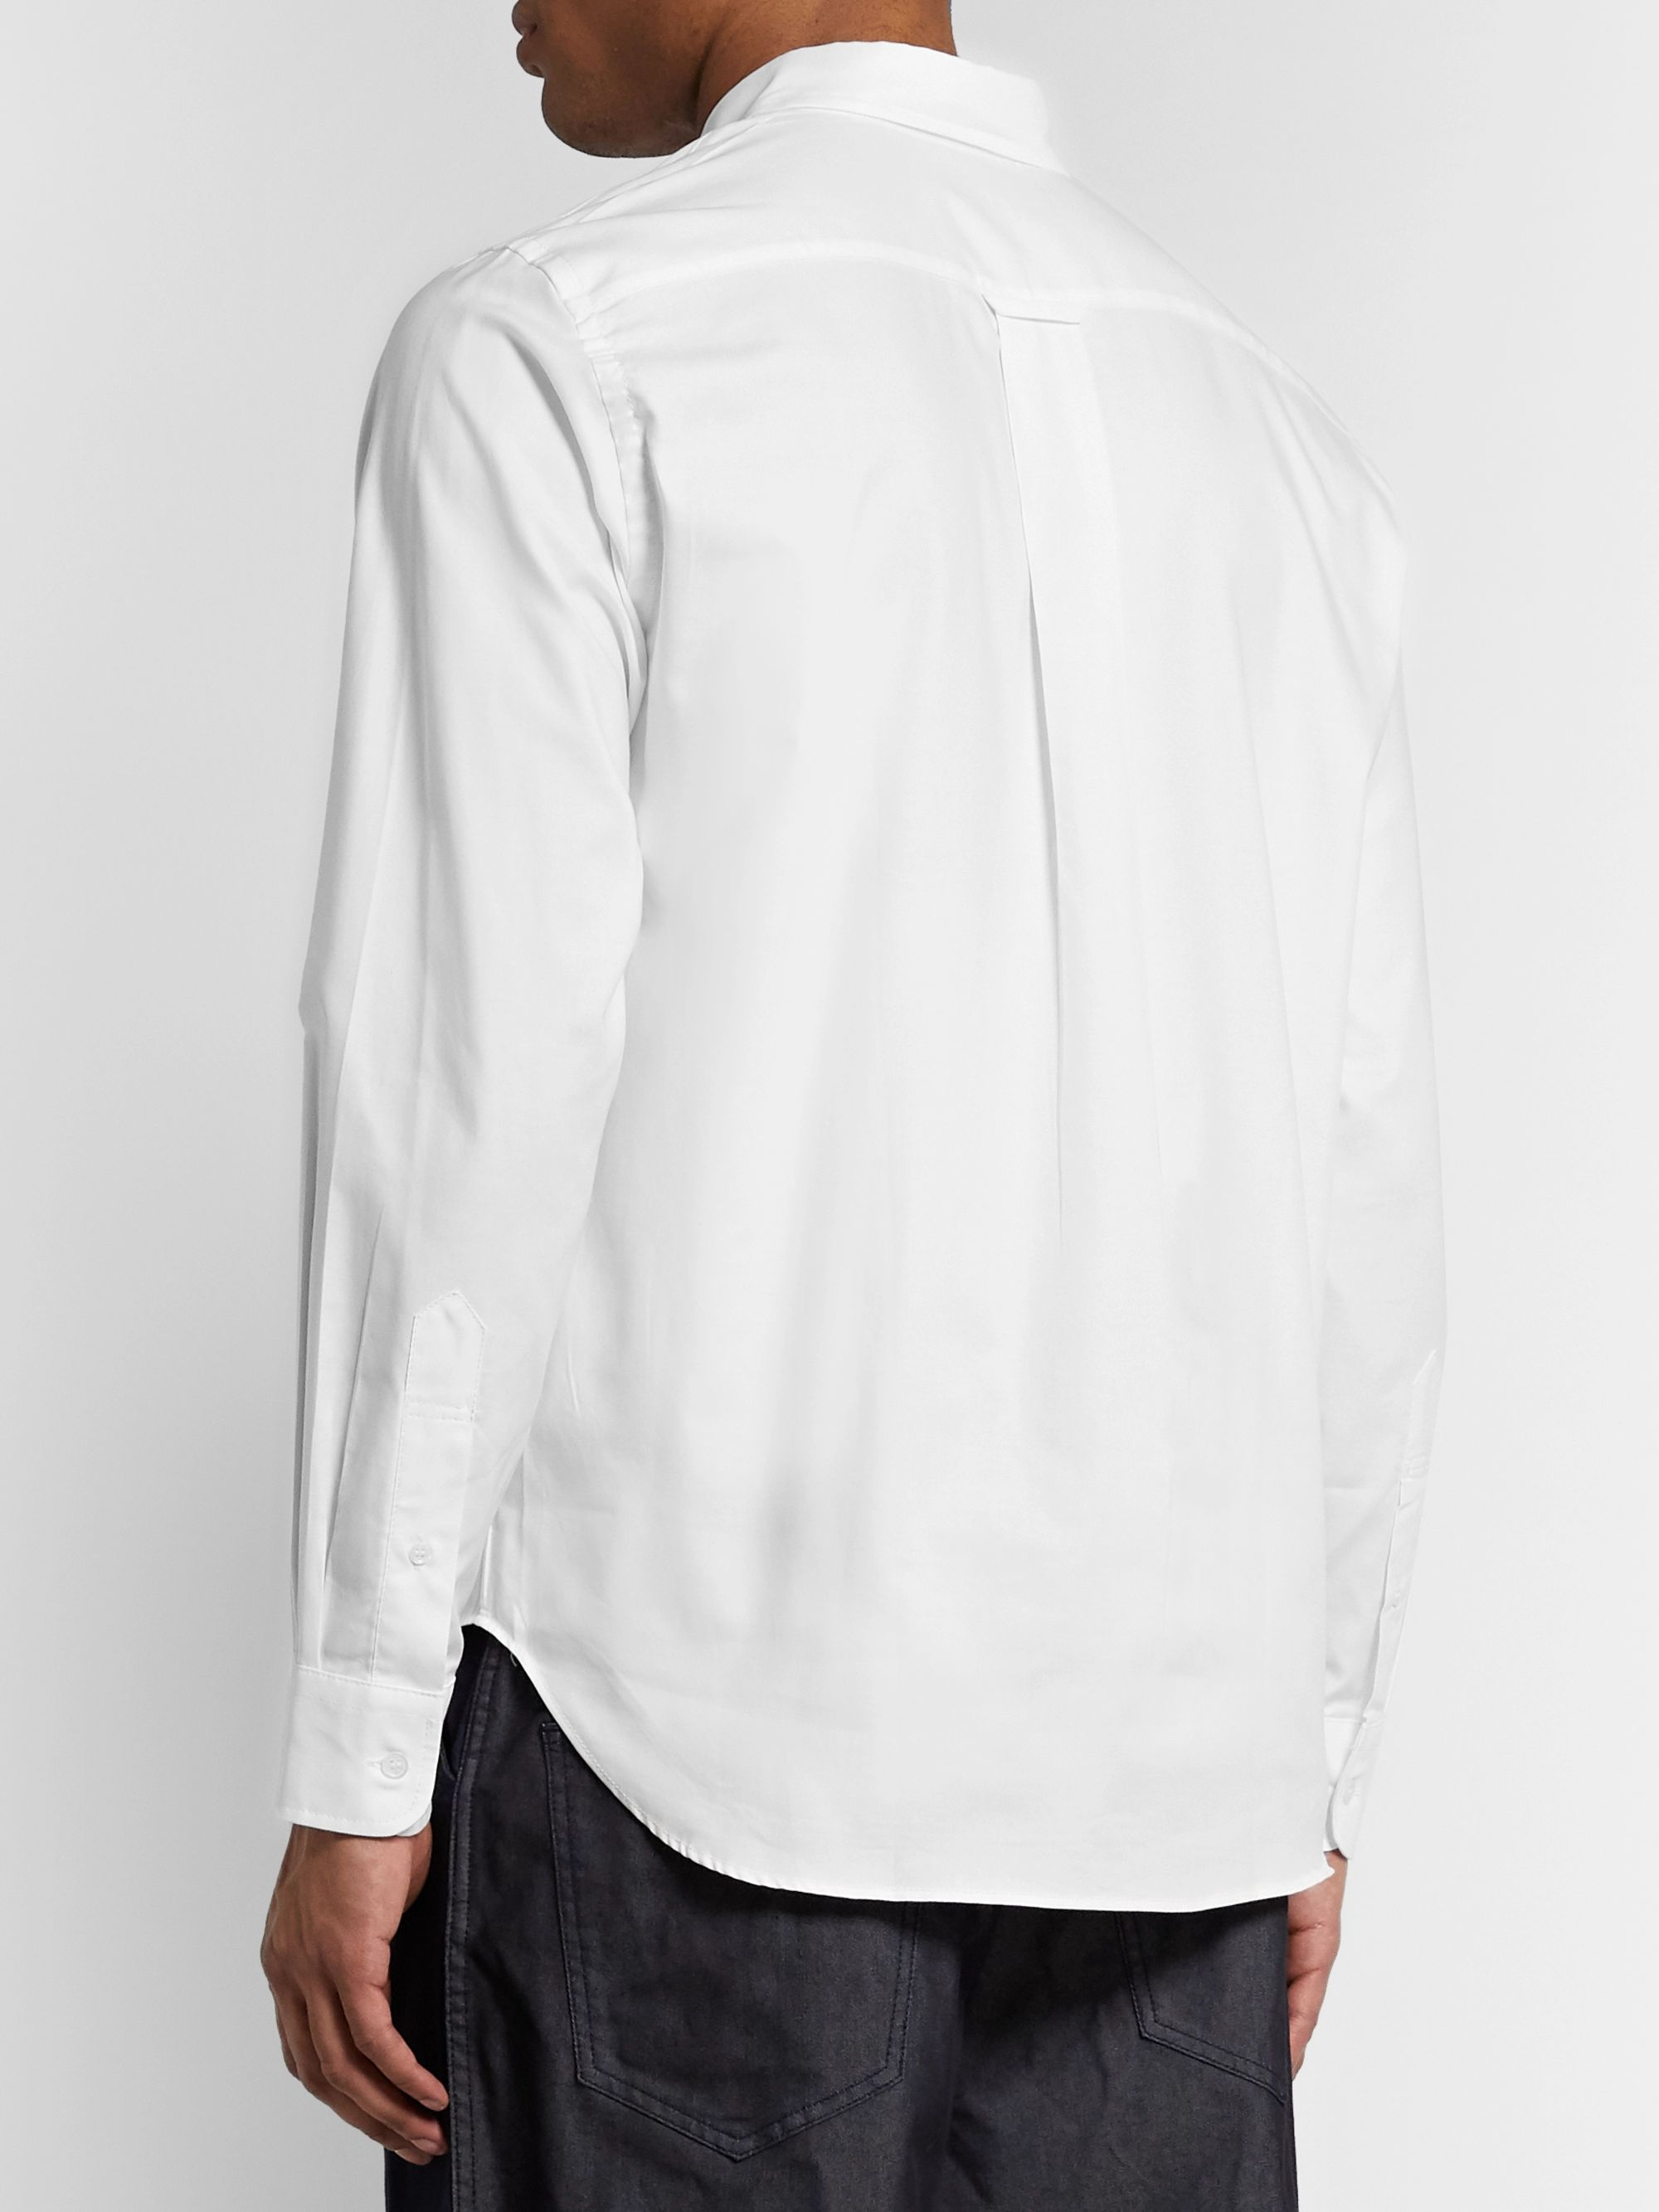 Comme des Garçons HOMME Slim-Fit Button-Down Collar Logo-Embroidered Cotton Oxford Shirt